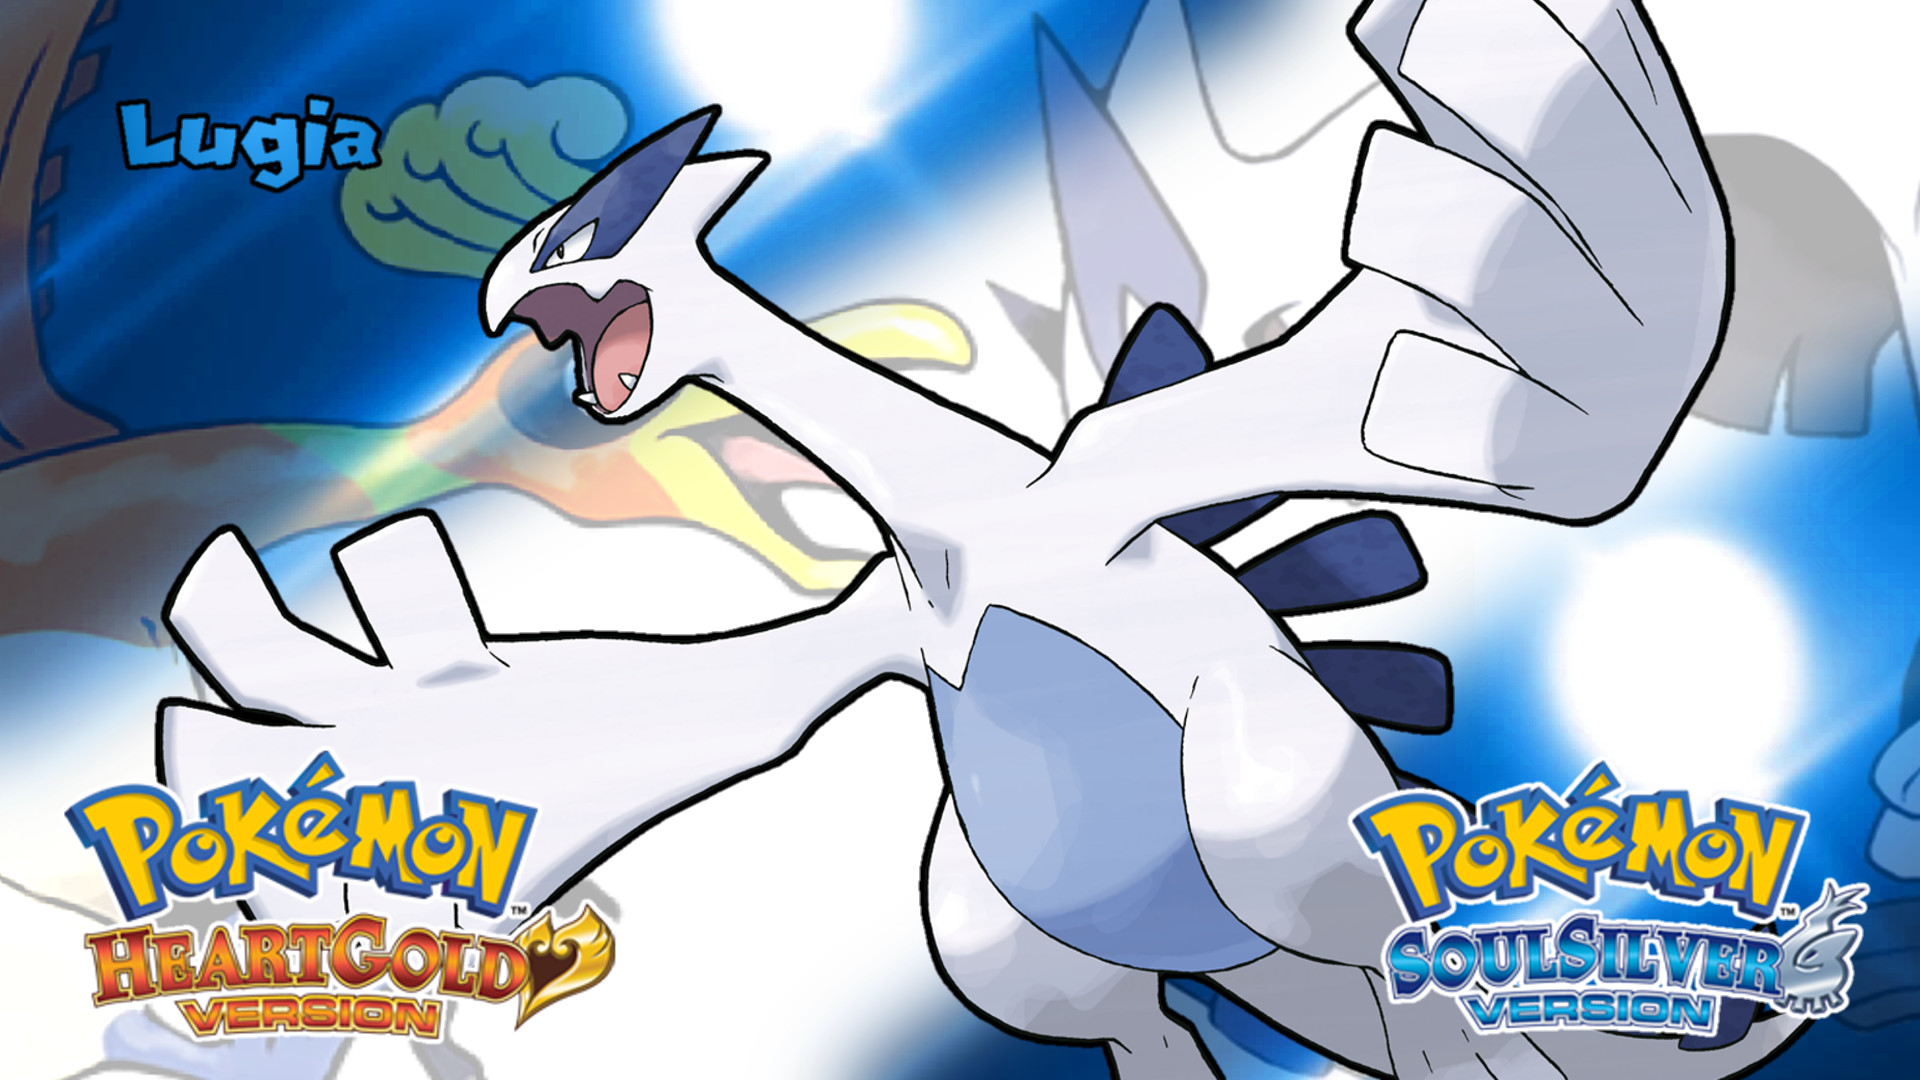 Res: 1920x1080, ... Pokemon HGSS- Lugia Wallpaper by MattPlaysVG